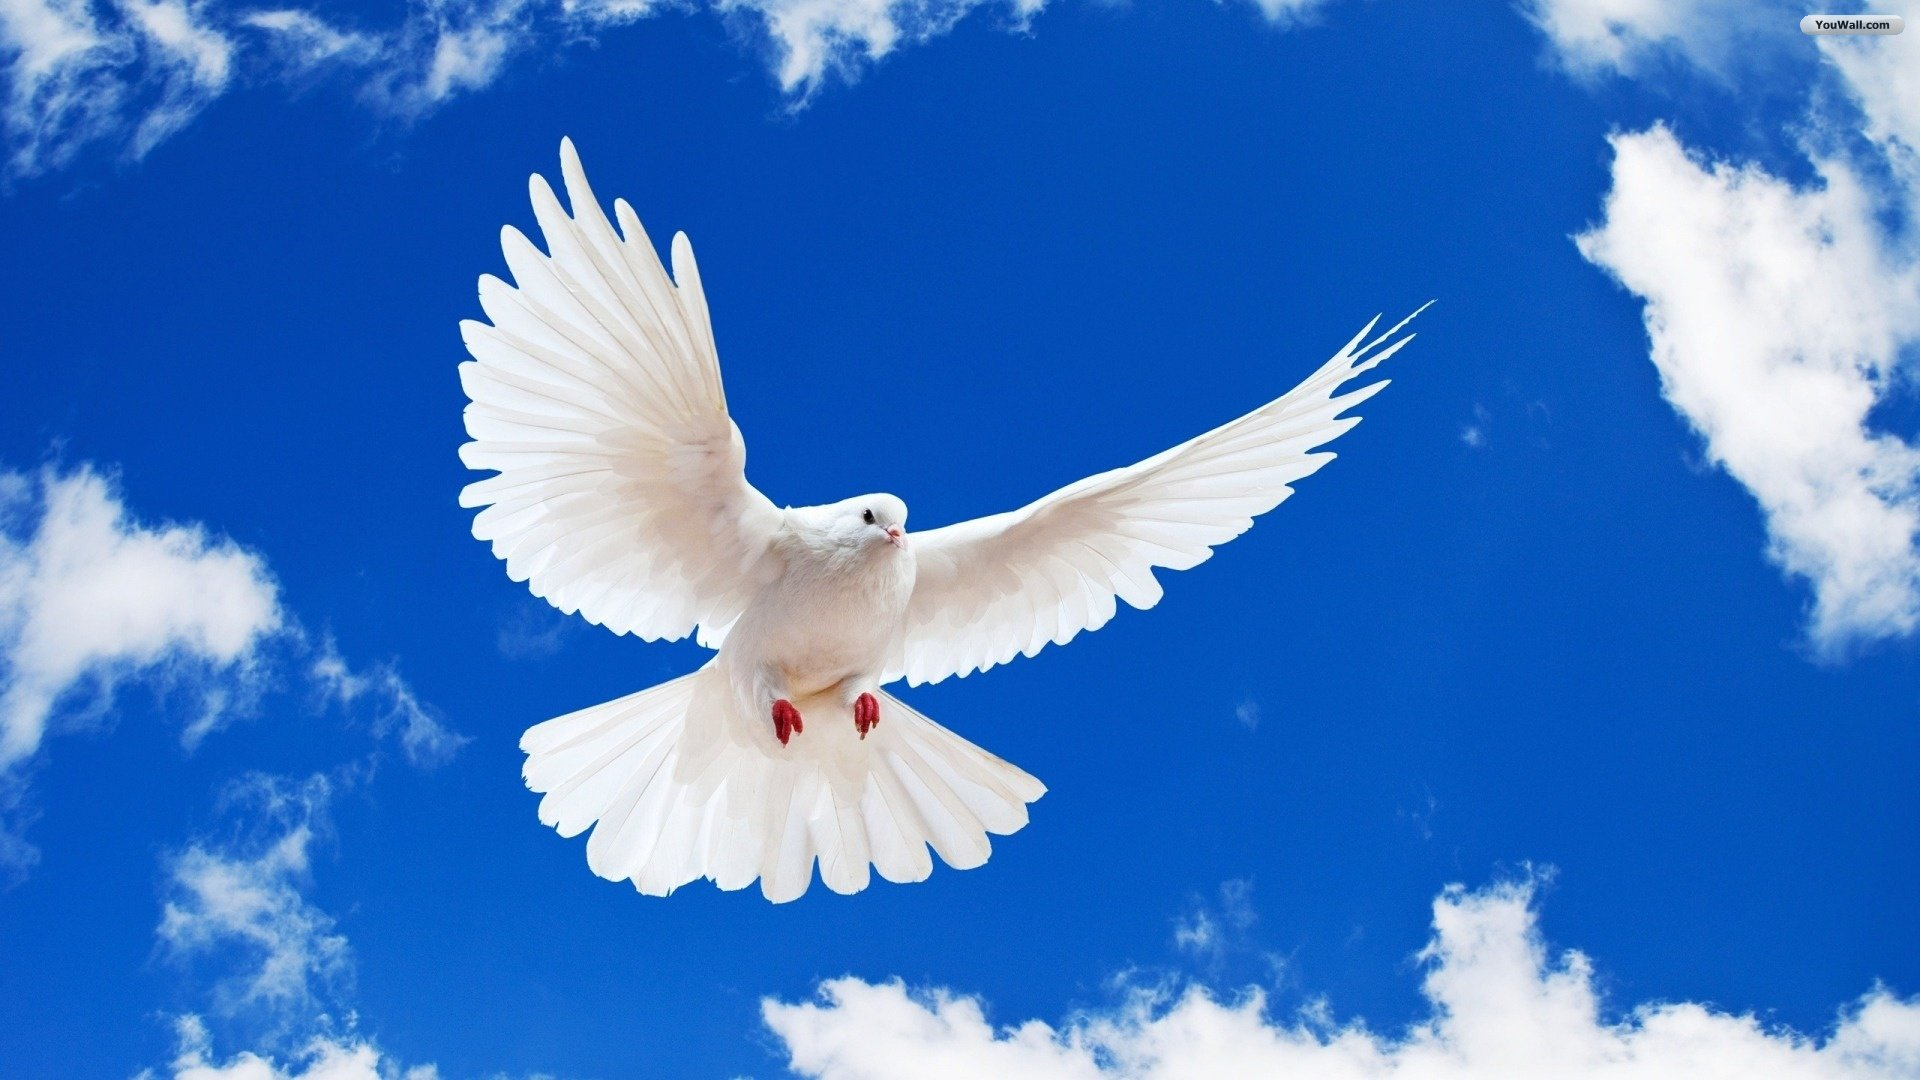 peace_wallpaper_3ebdf_0